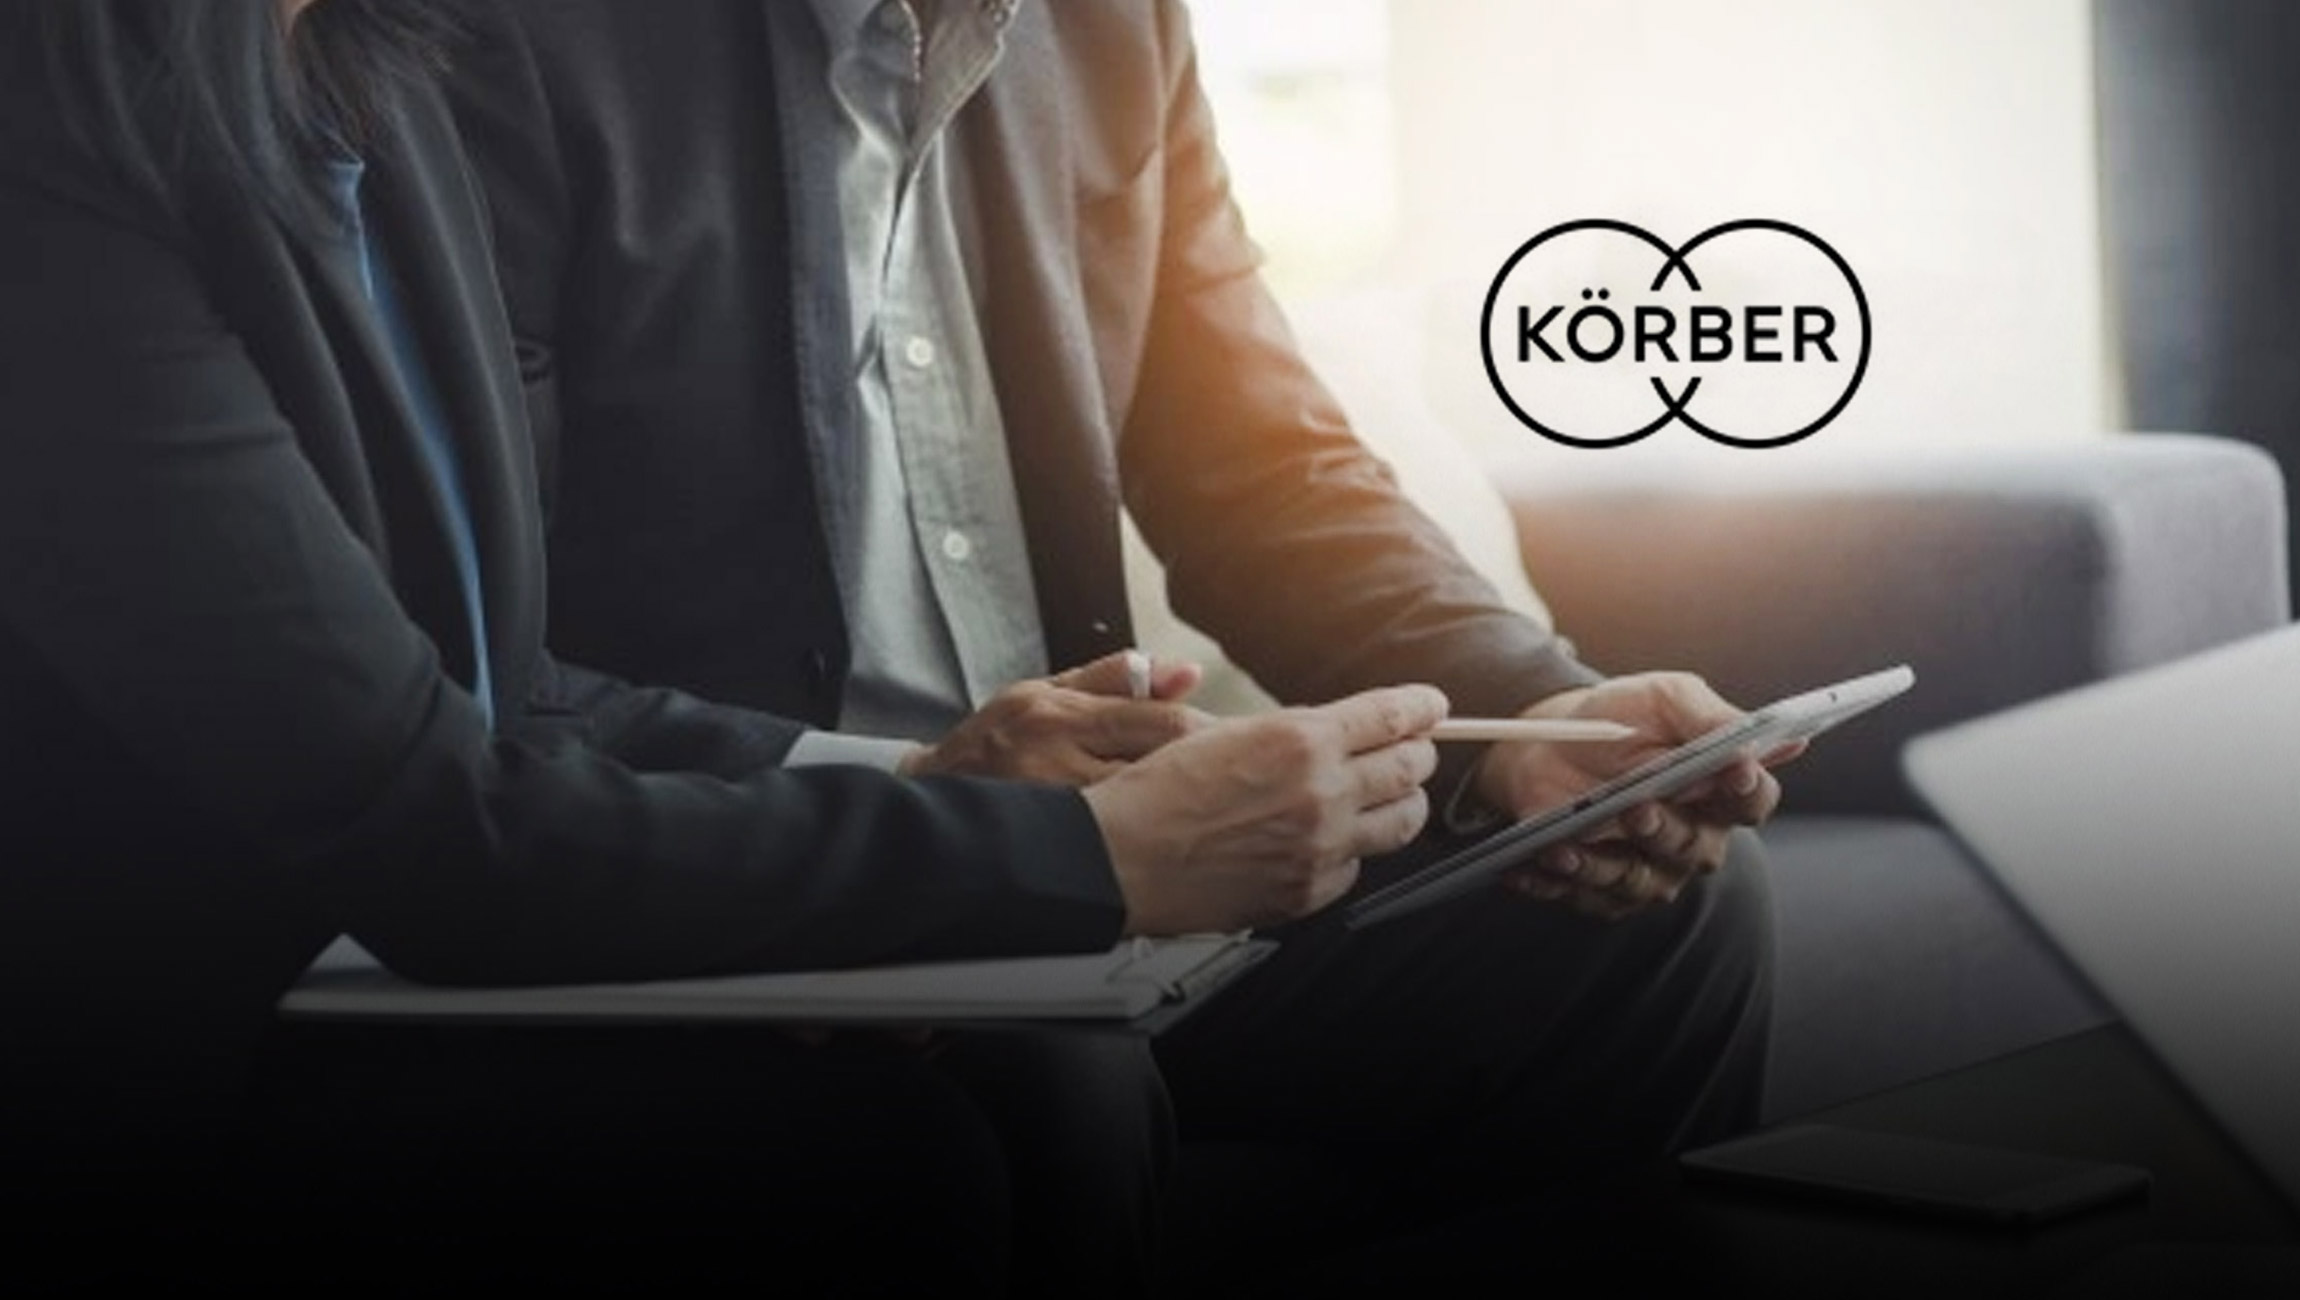 Körber unveils unrivalled supply chain solution portfolio and strategy at Elevate EMEA 2021